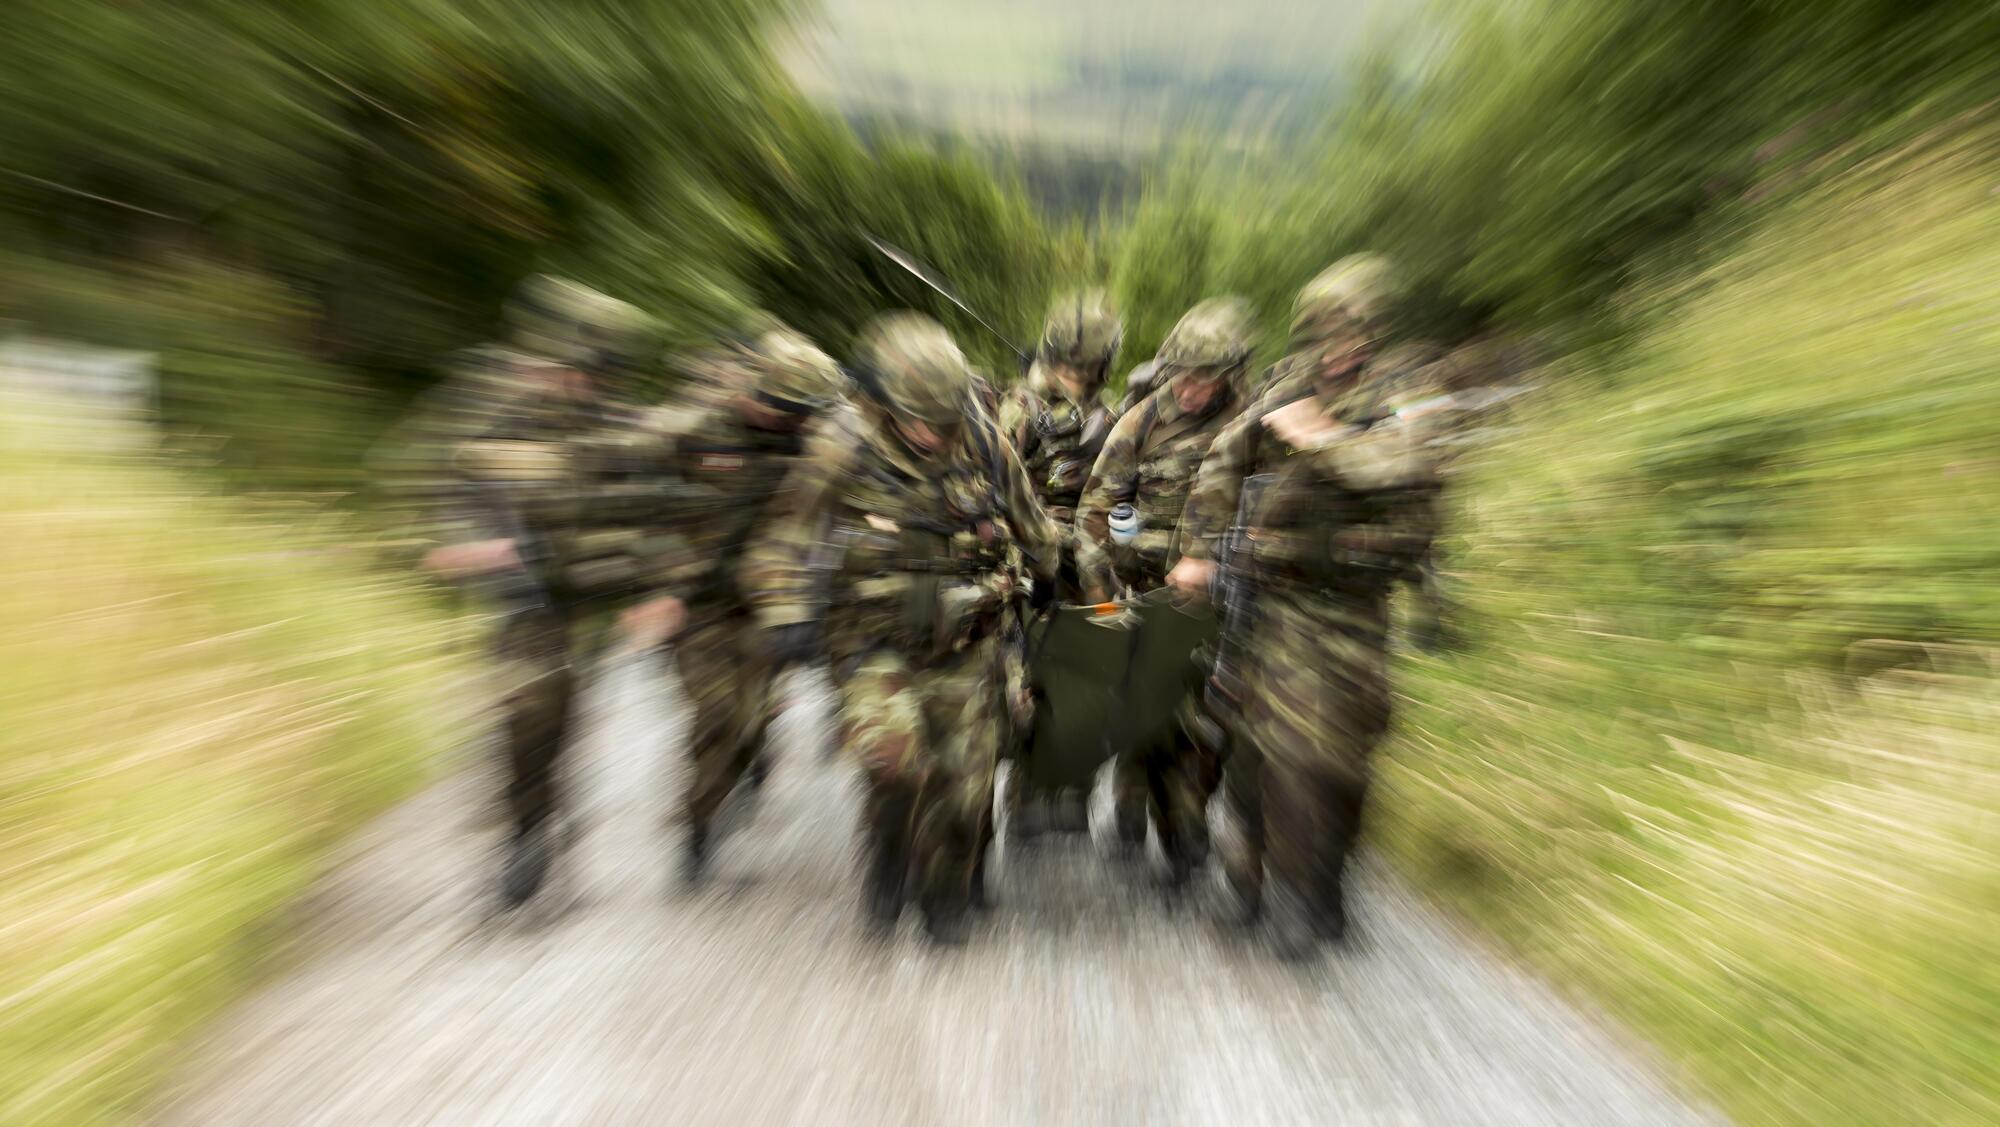 Defence Forces will struggle to fill overseas missions due to quarantine, officers warn